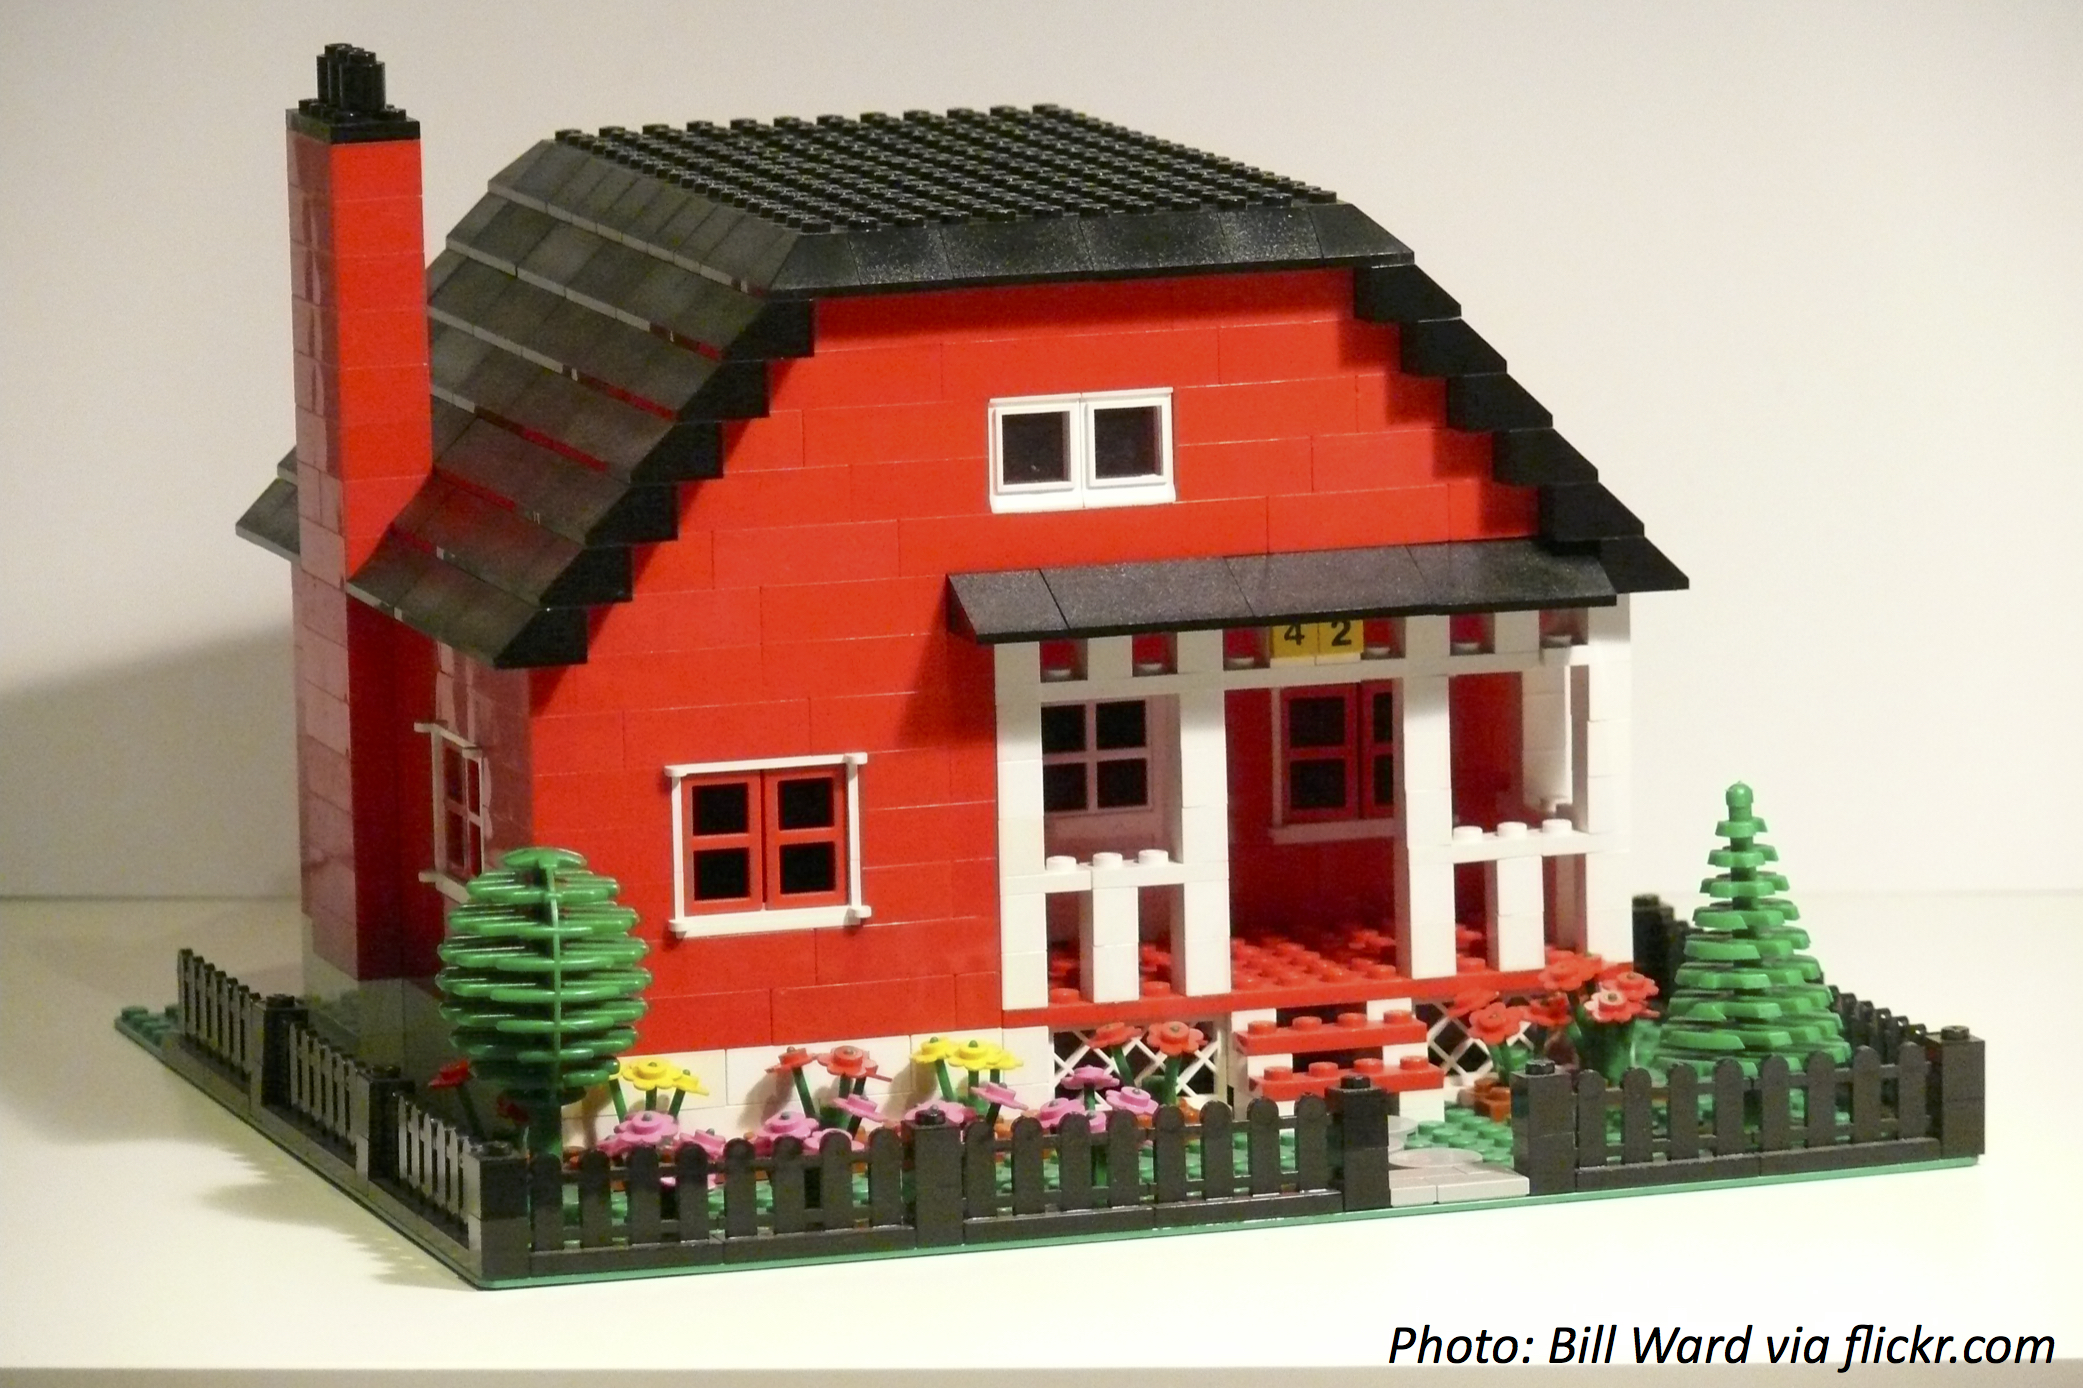 Your House, Made of Lego